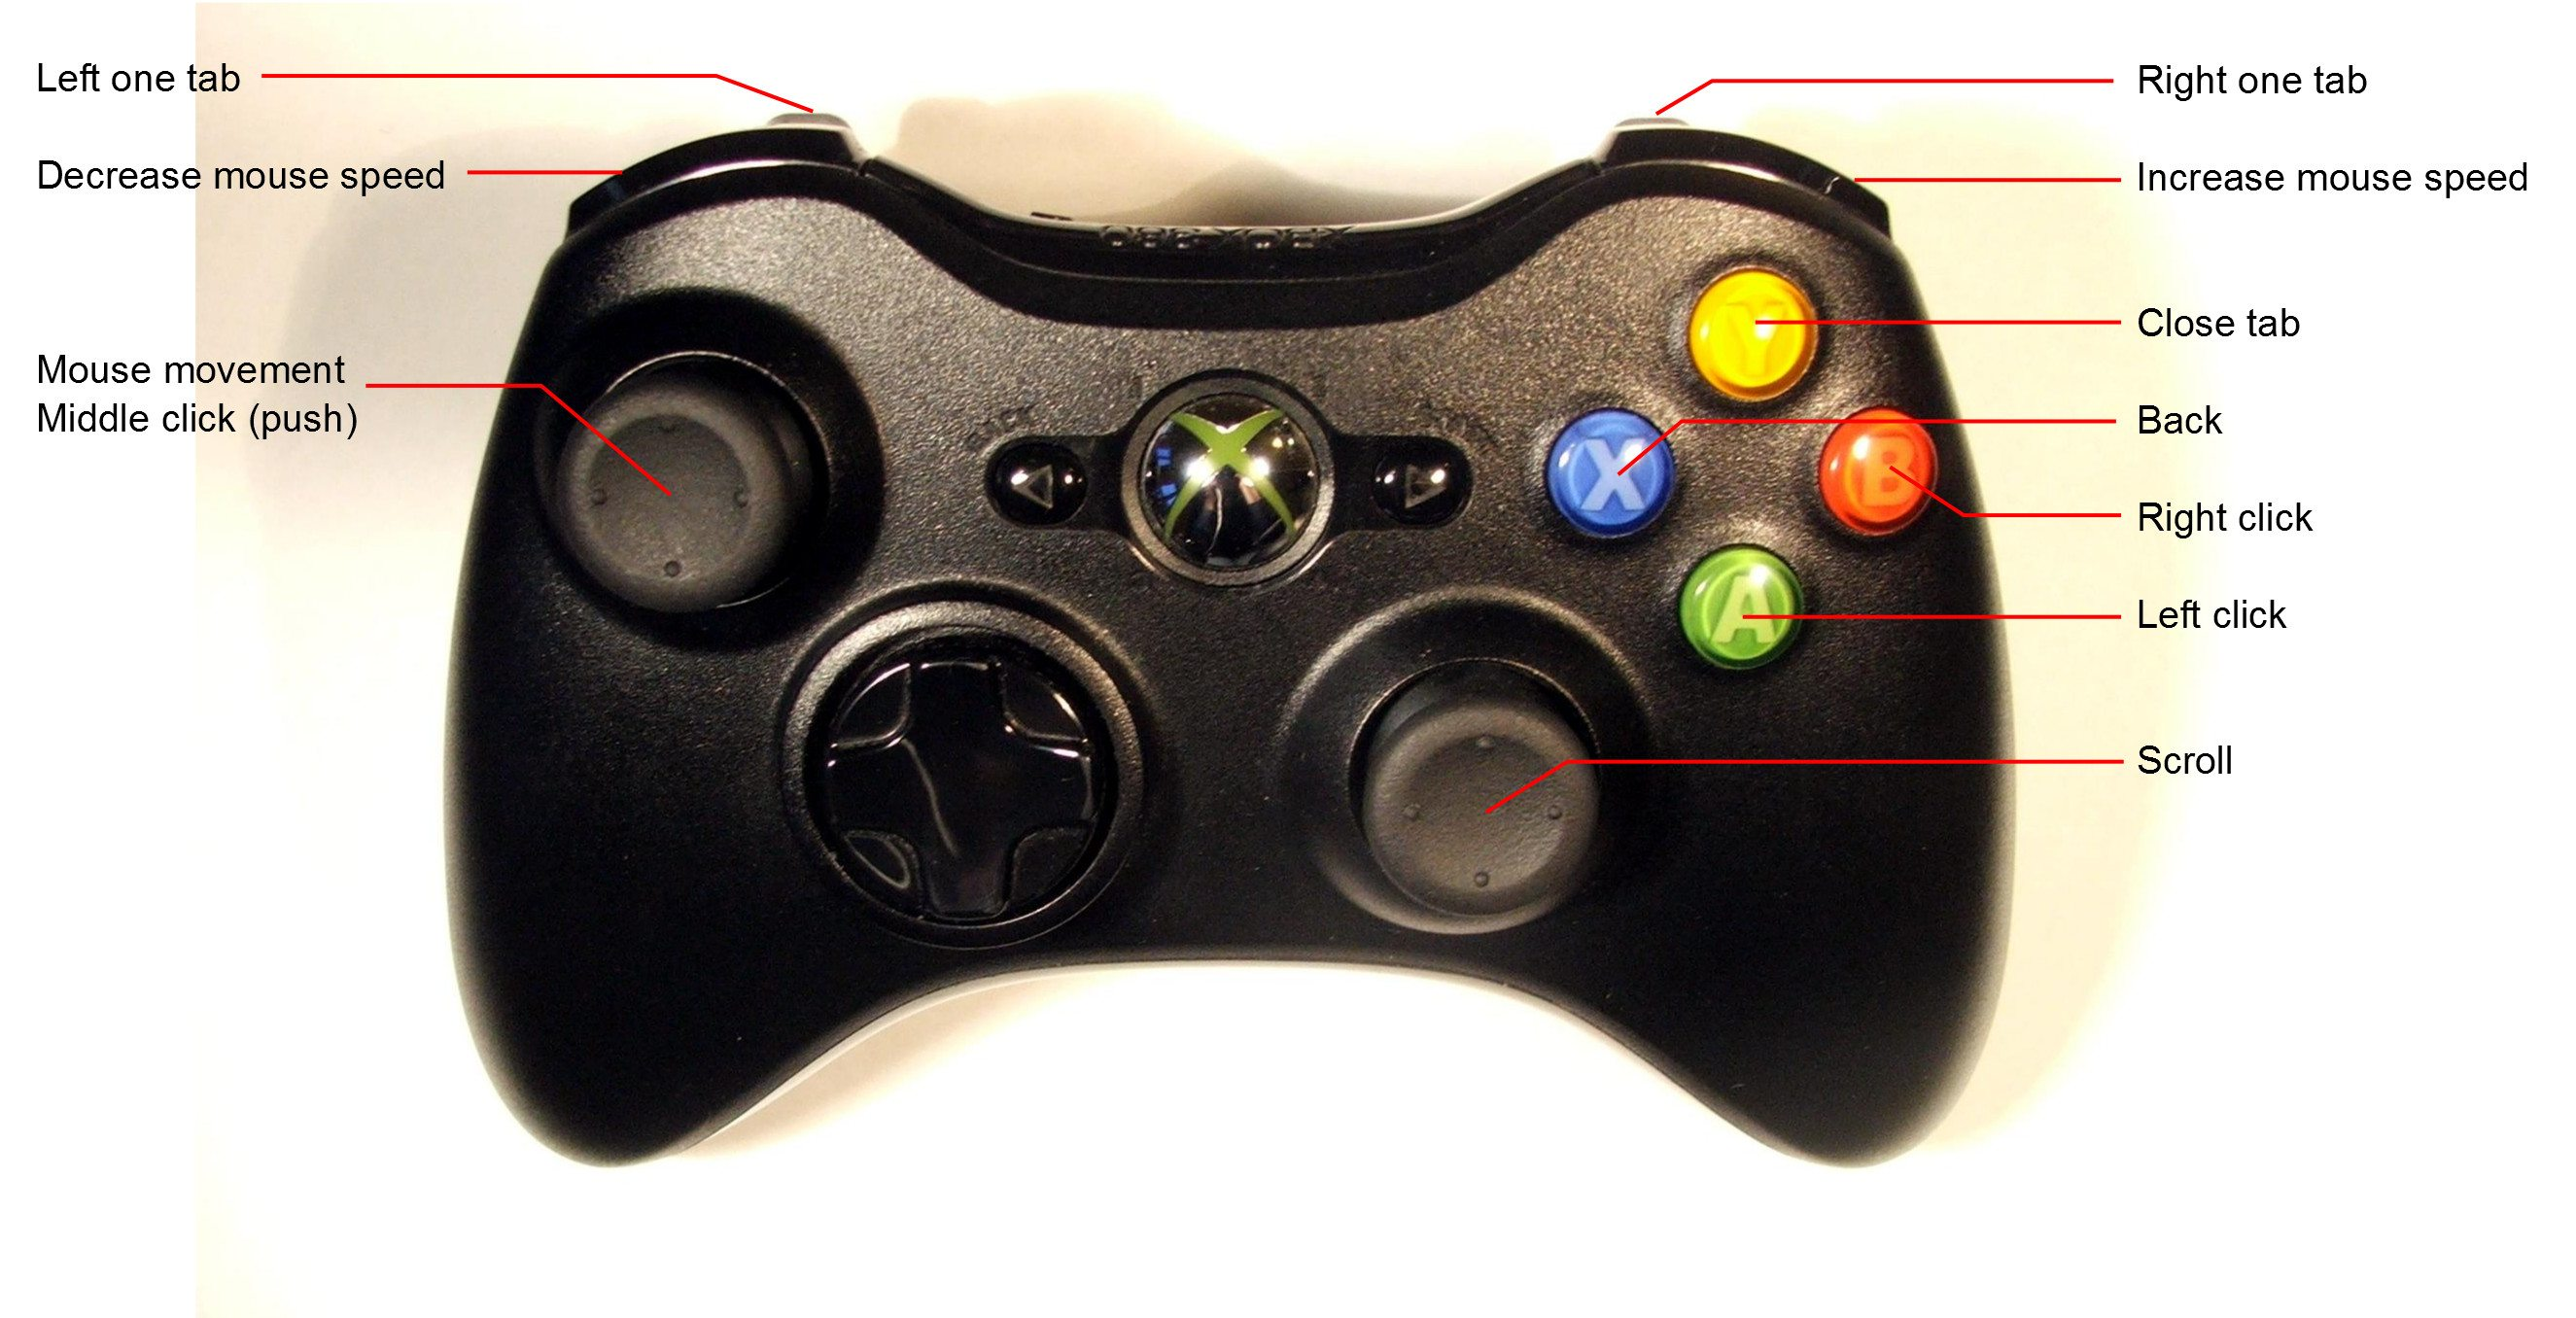 An image displaying the mapping of controls to browser functions.